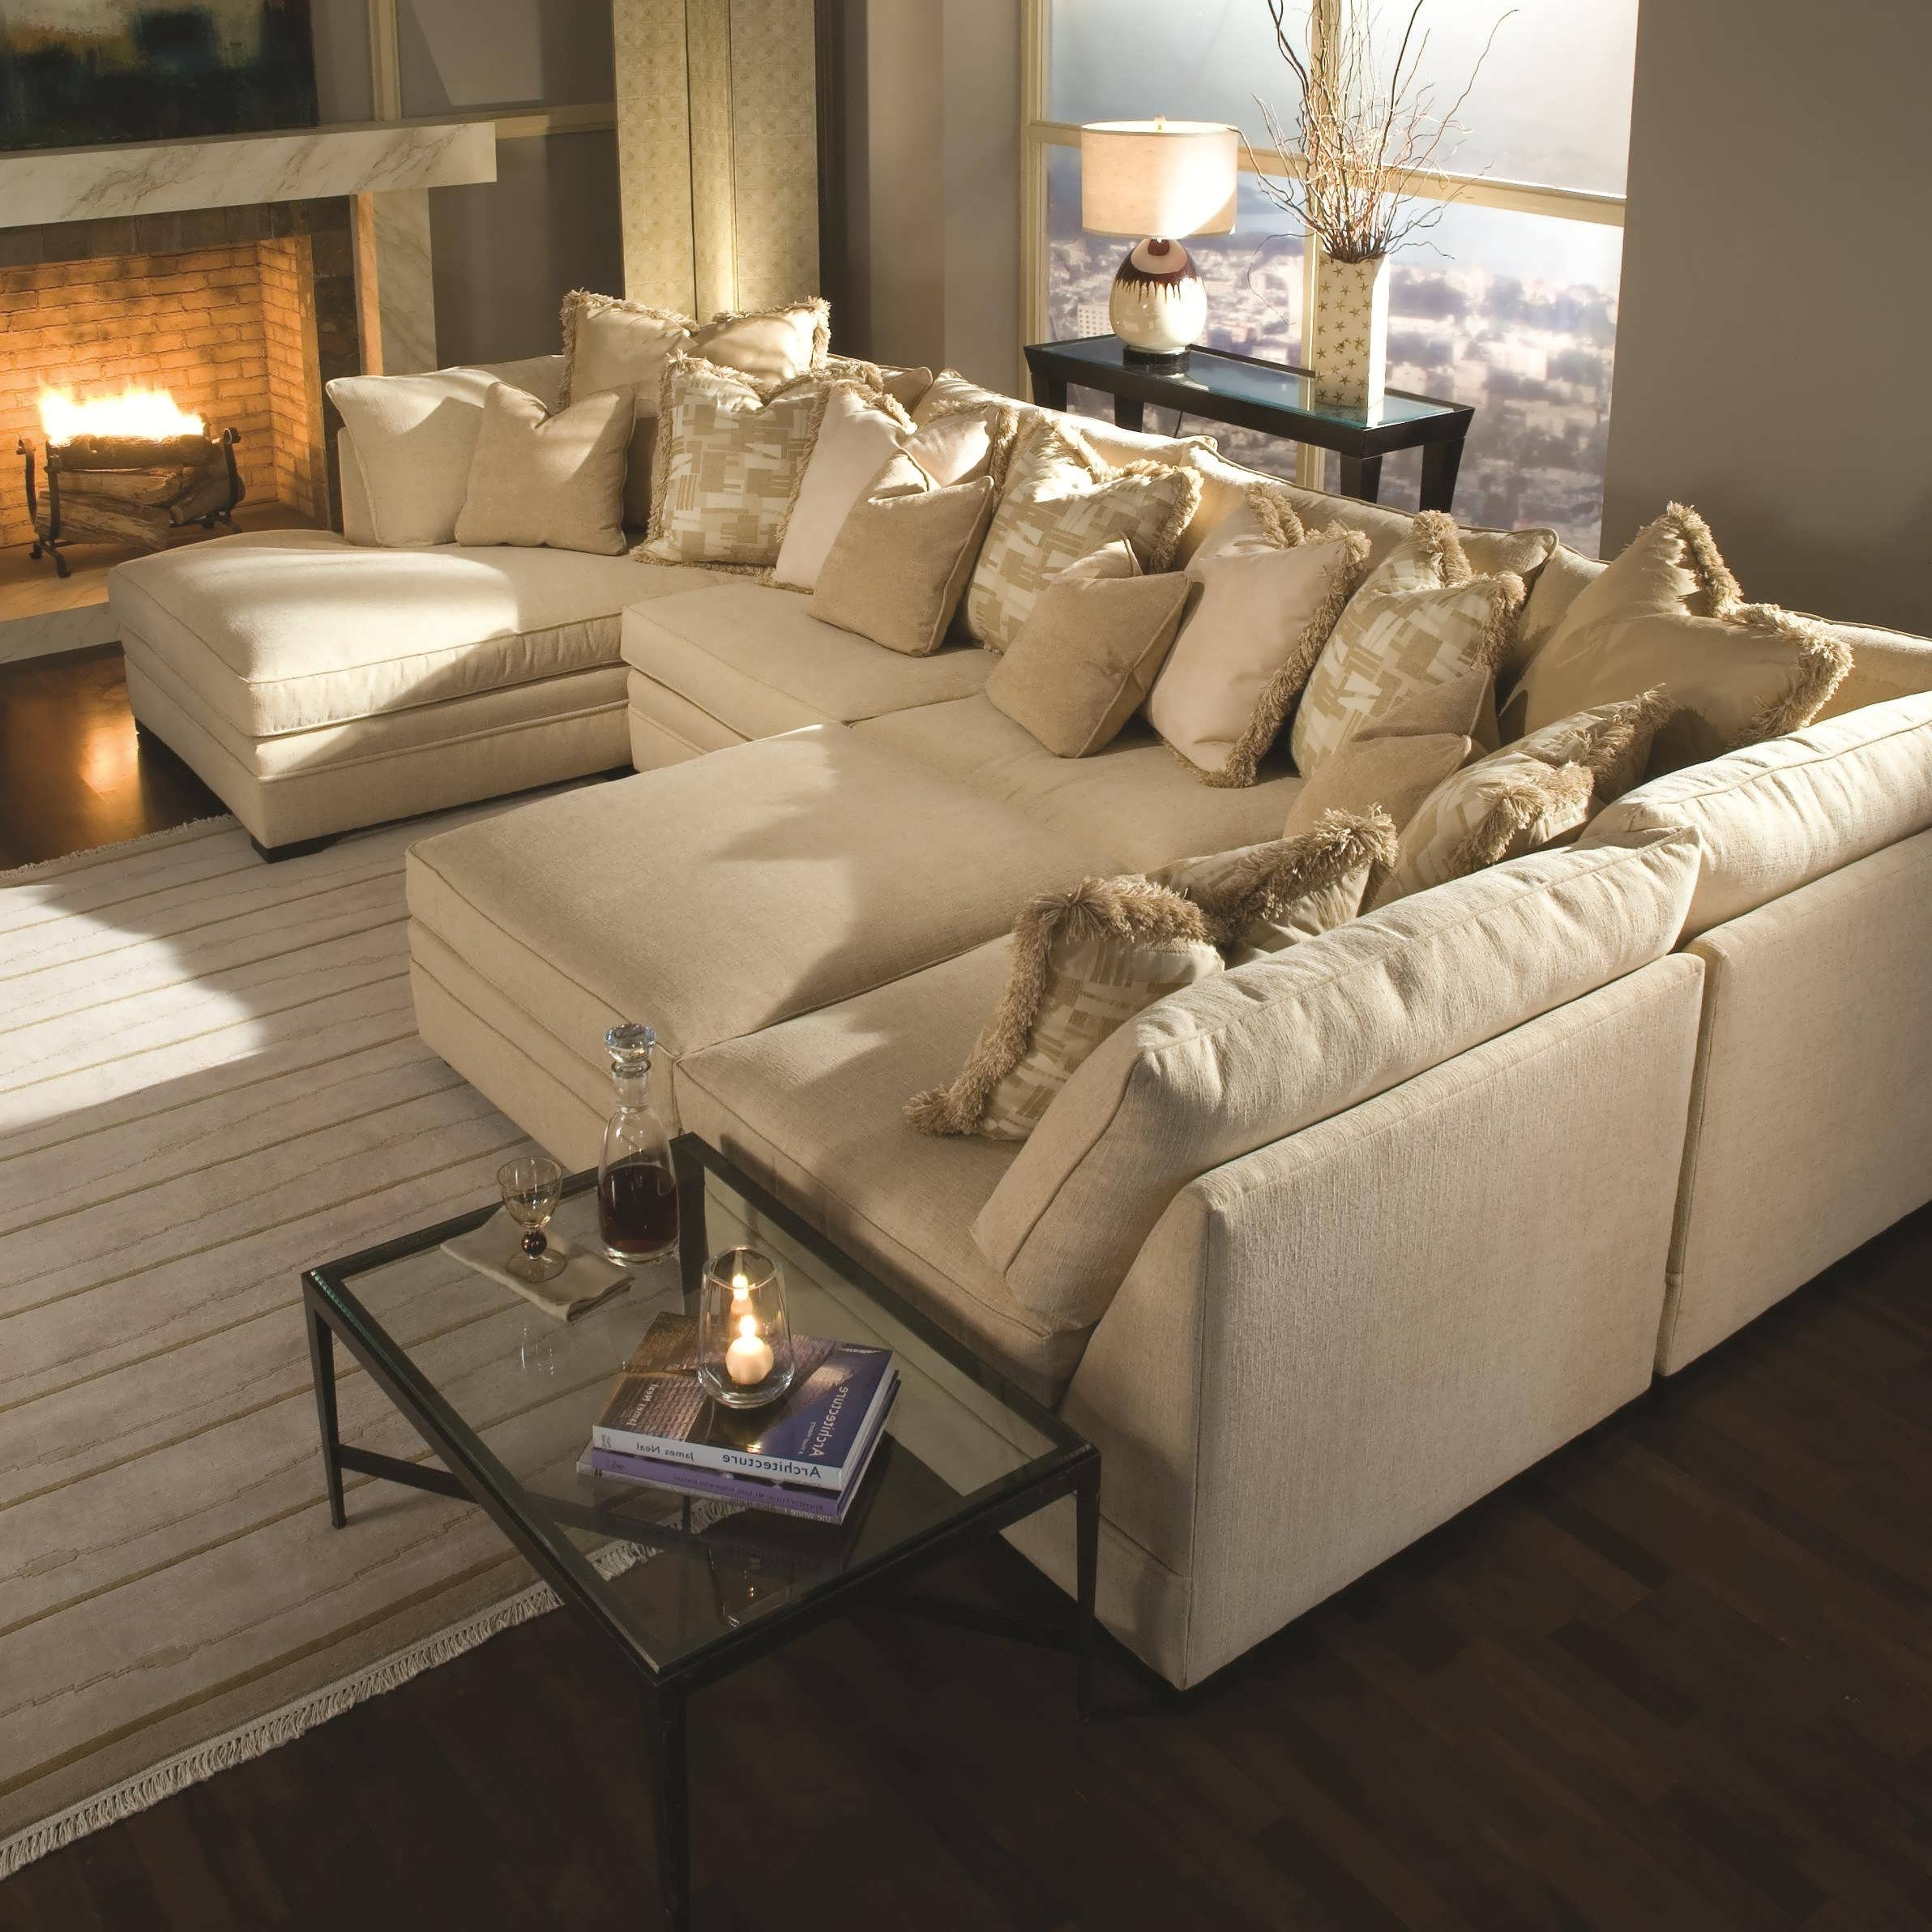 Oversized Sectional Sofas With Chaise Within Preferred Sofa : Large Sectional With Chaise Huge Sectional Sofas Large (View 9 of 15)